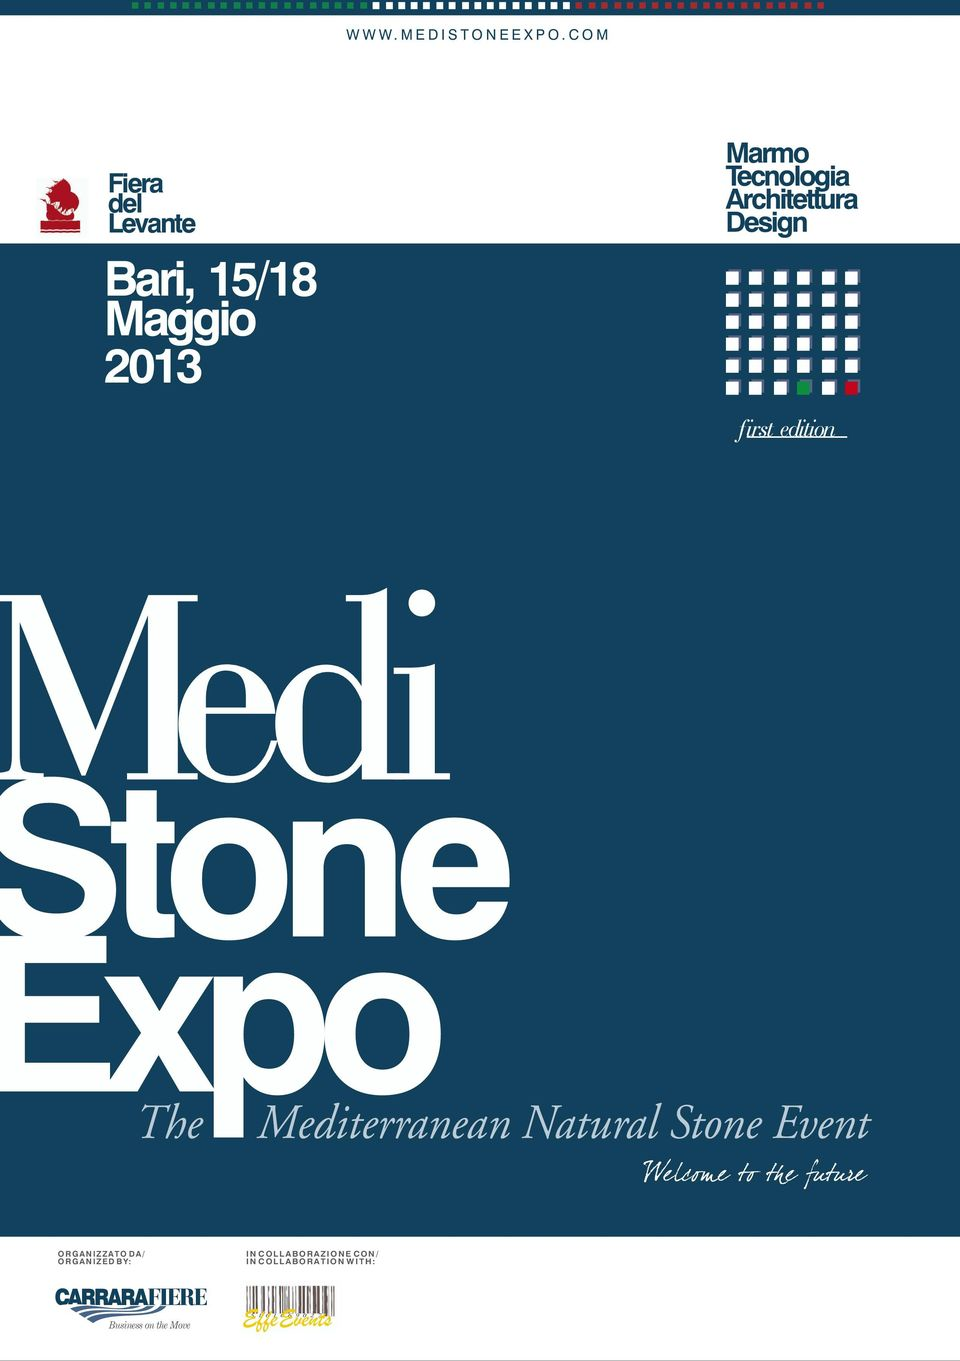 Design first edition edi tone xpo The Mediterranean Natural Stone Event